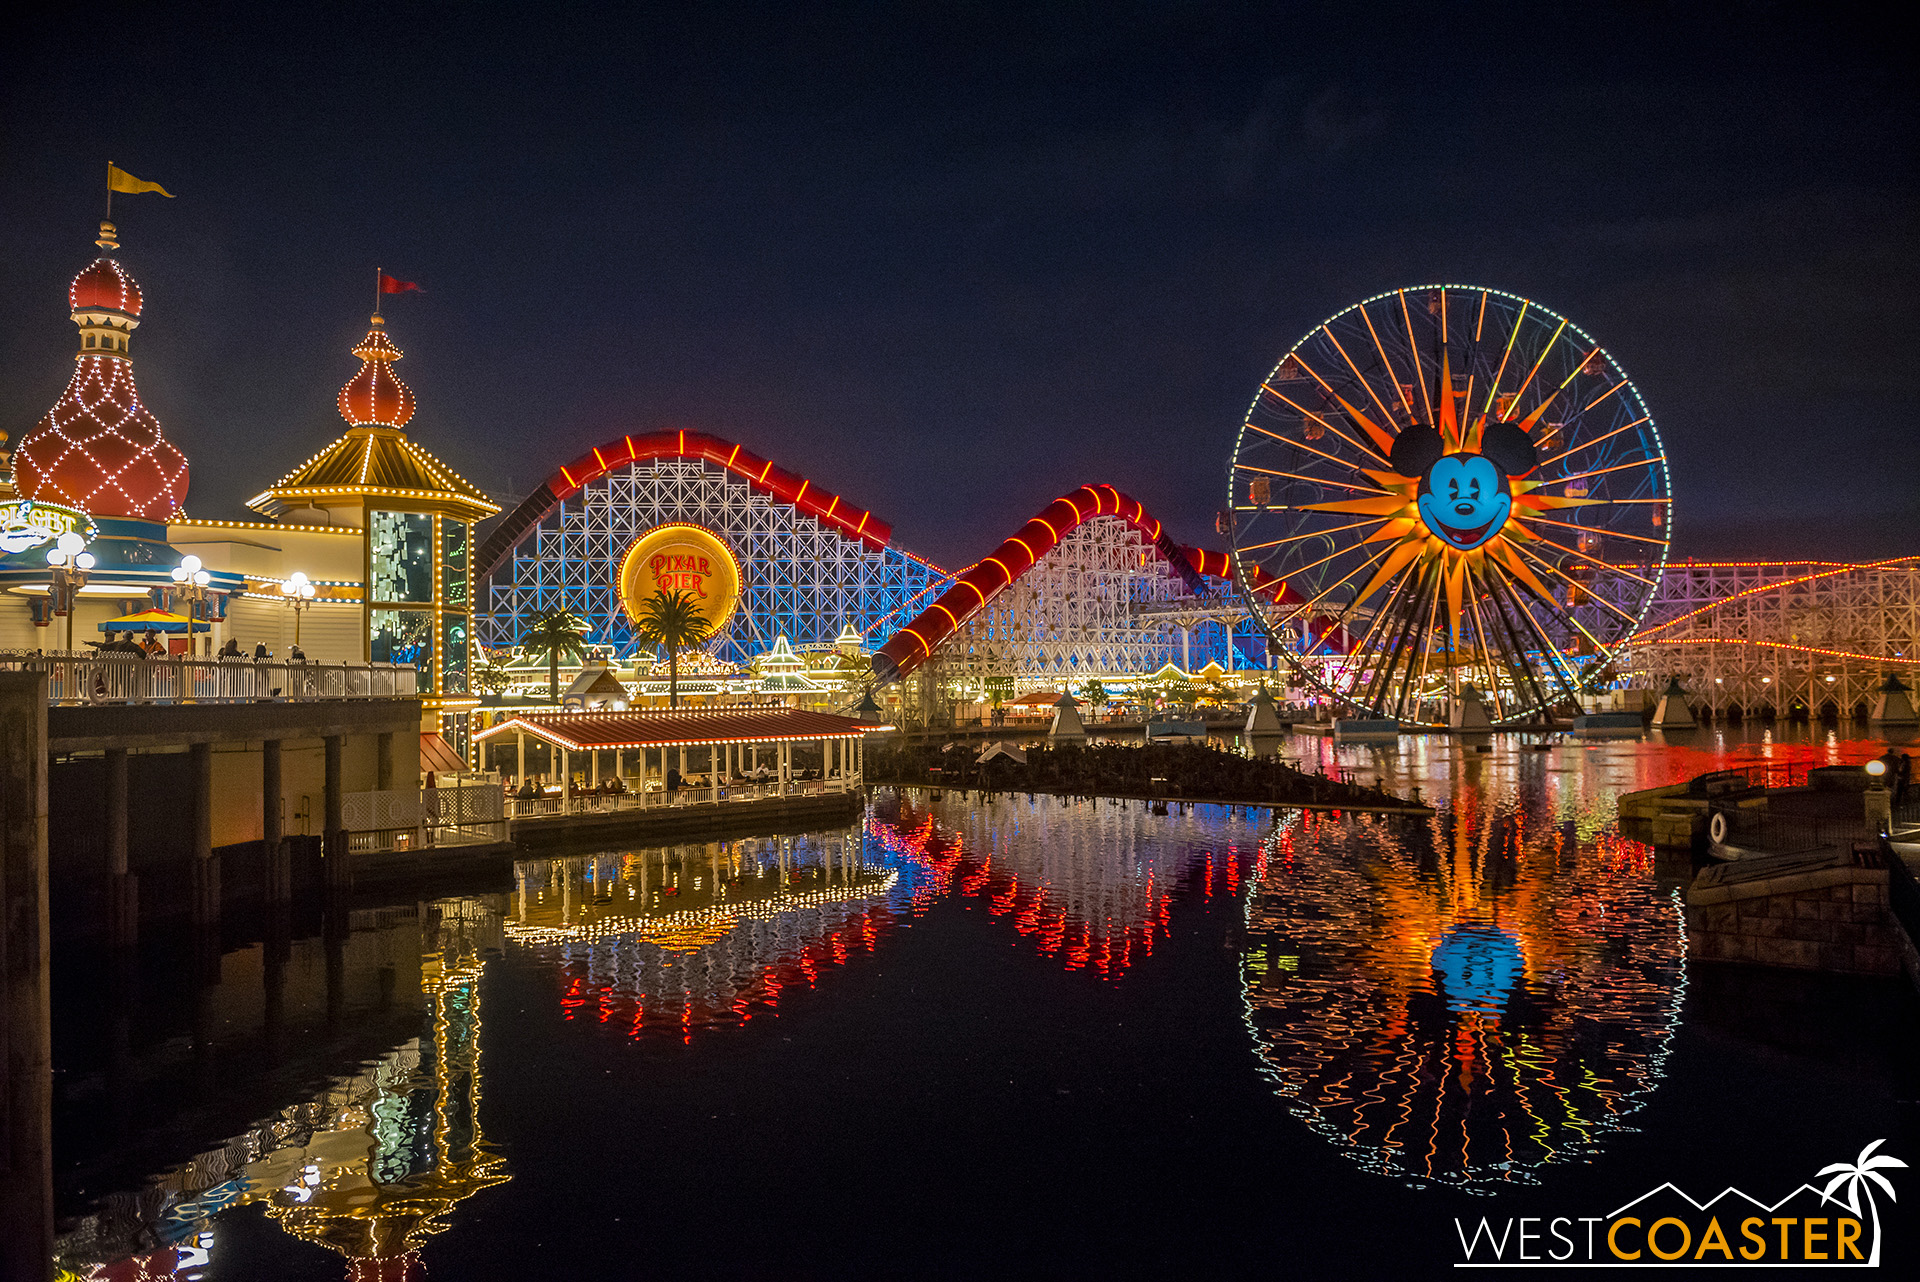 One World of Color platform was up last Friday when I stopped by.